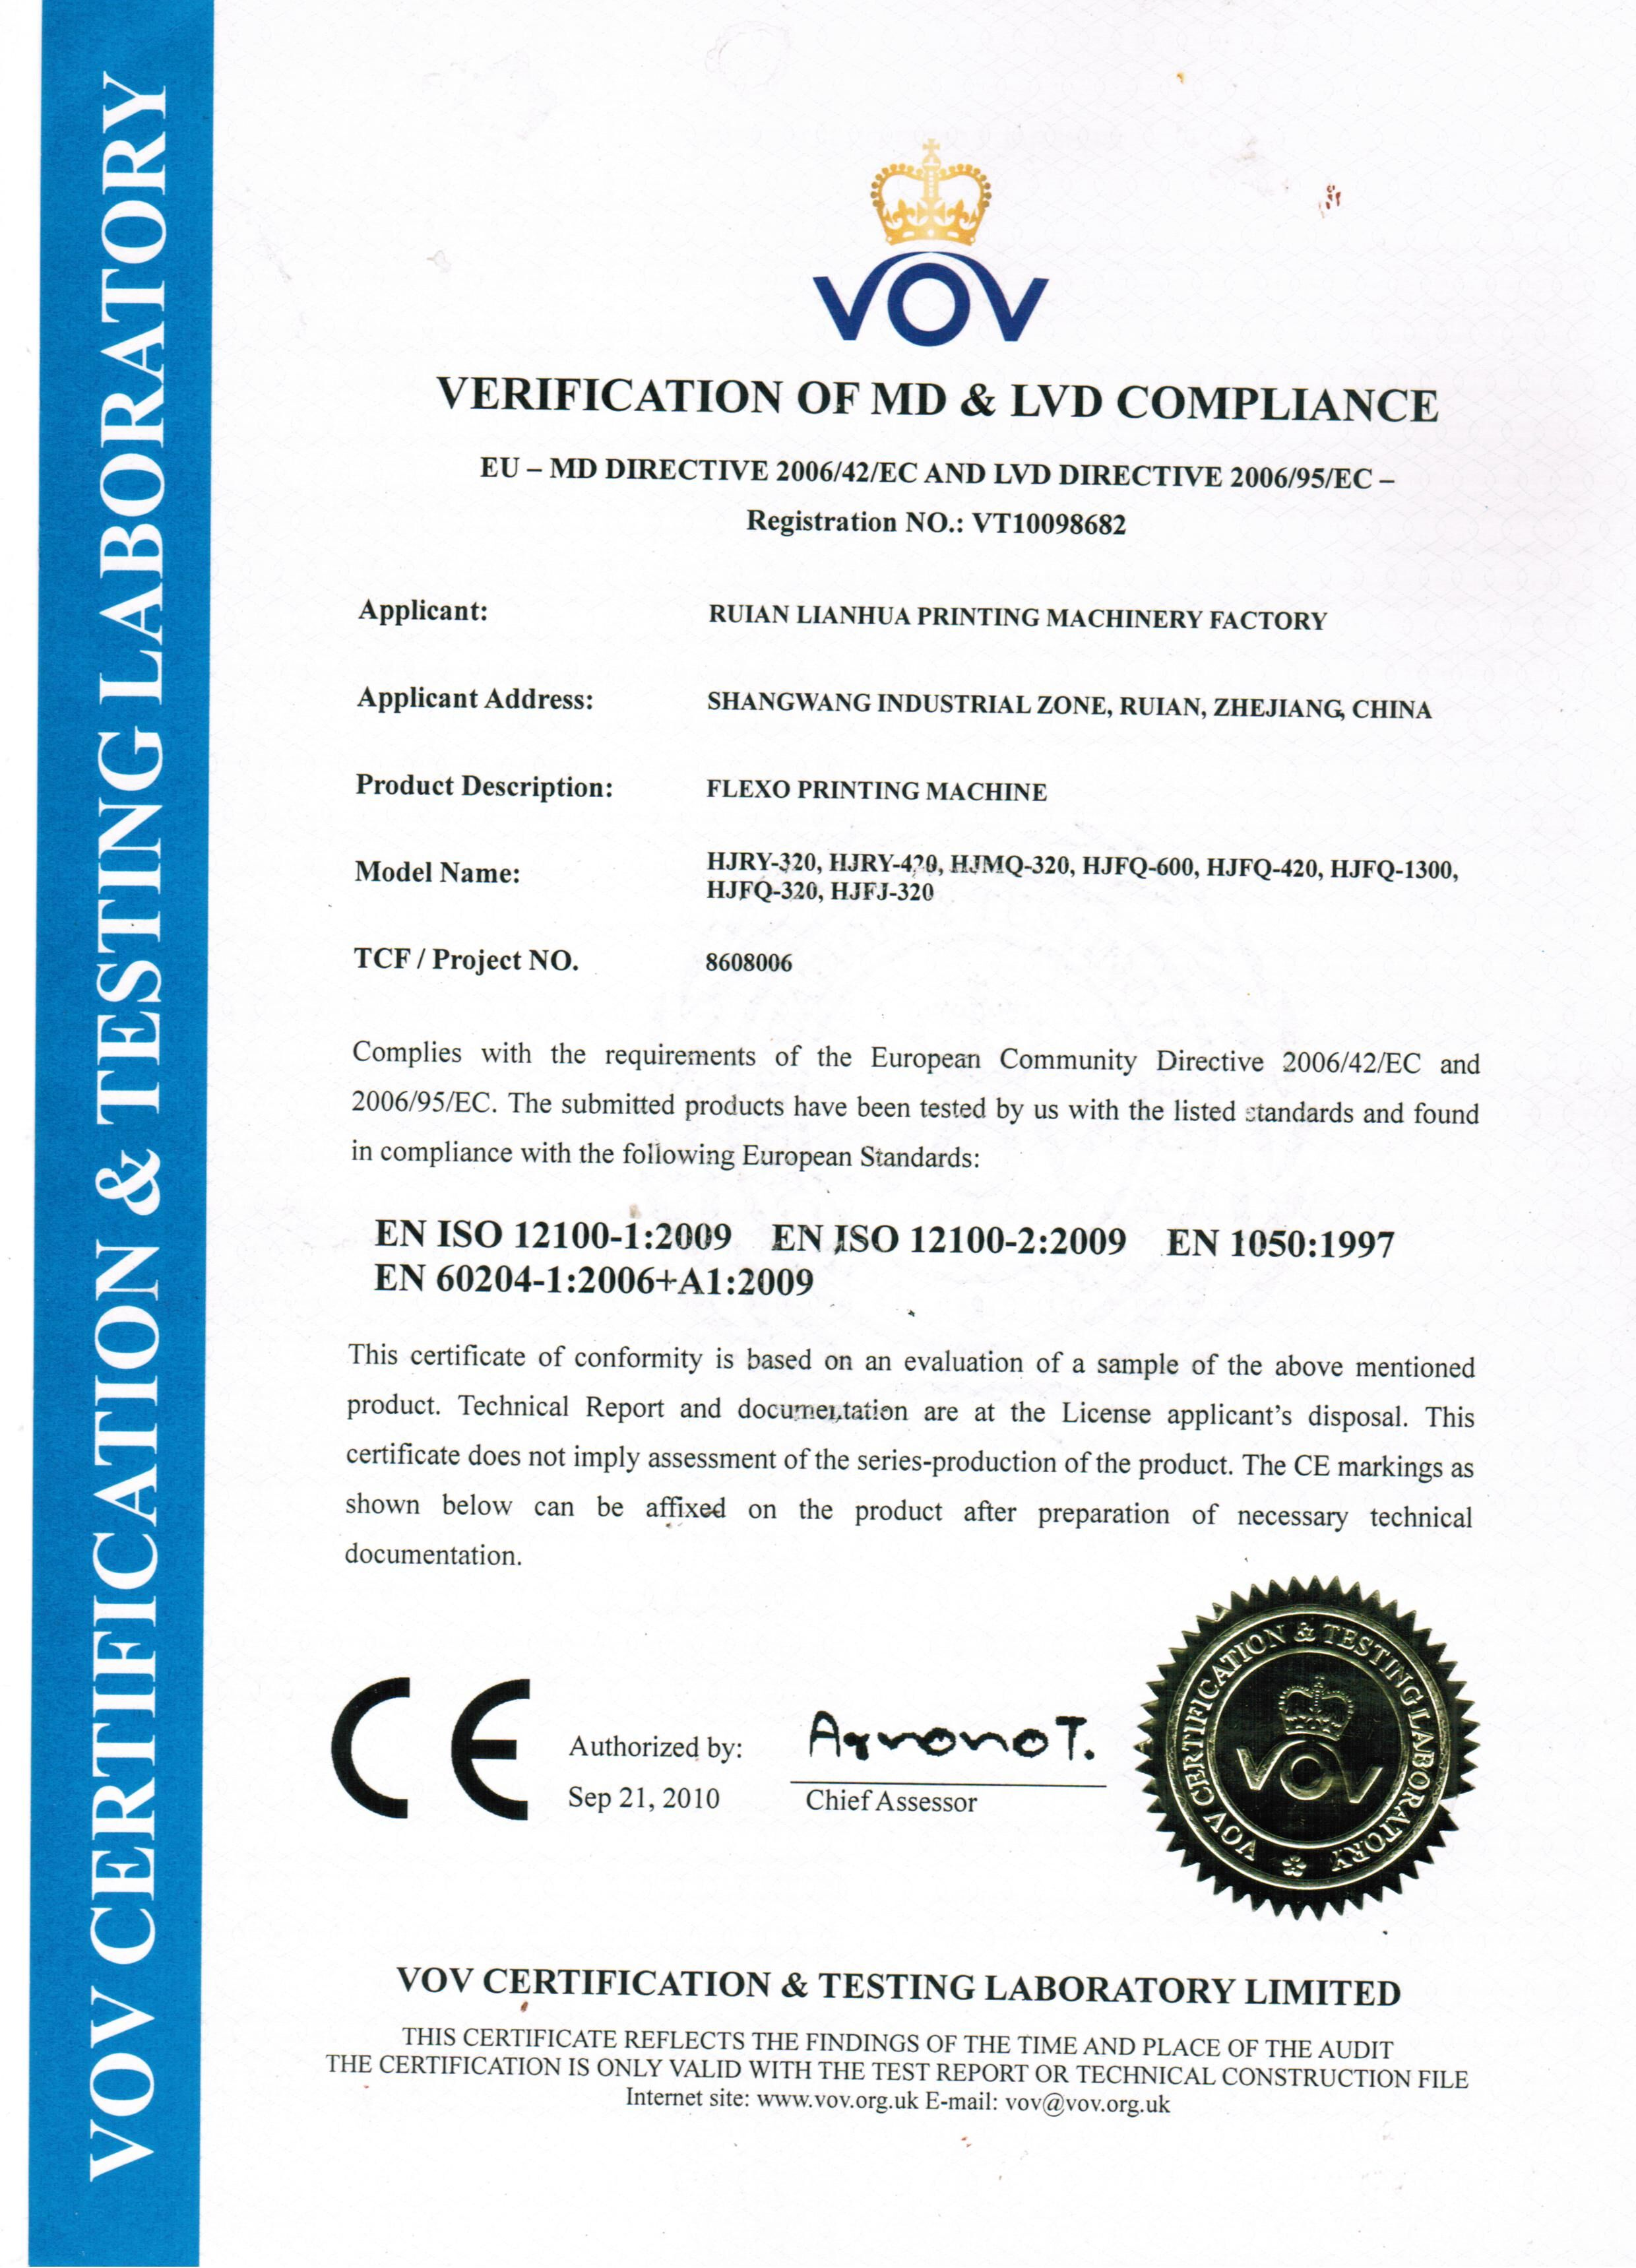 CE certification of printing machine